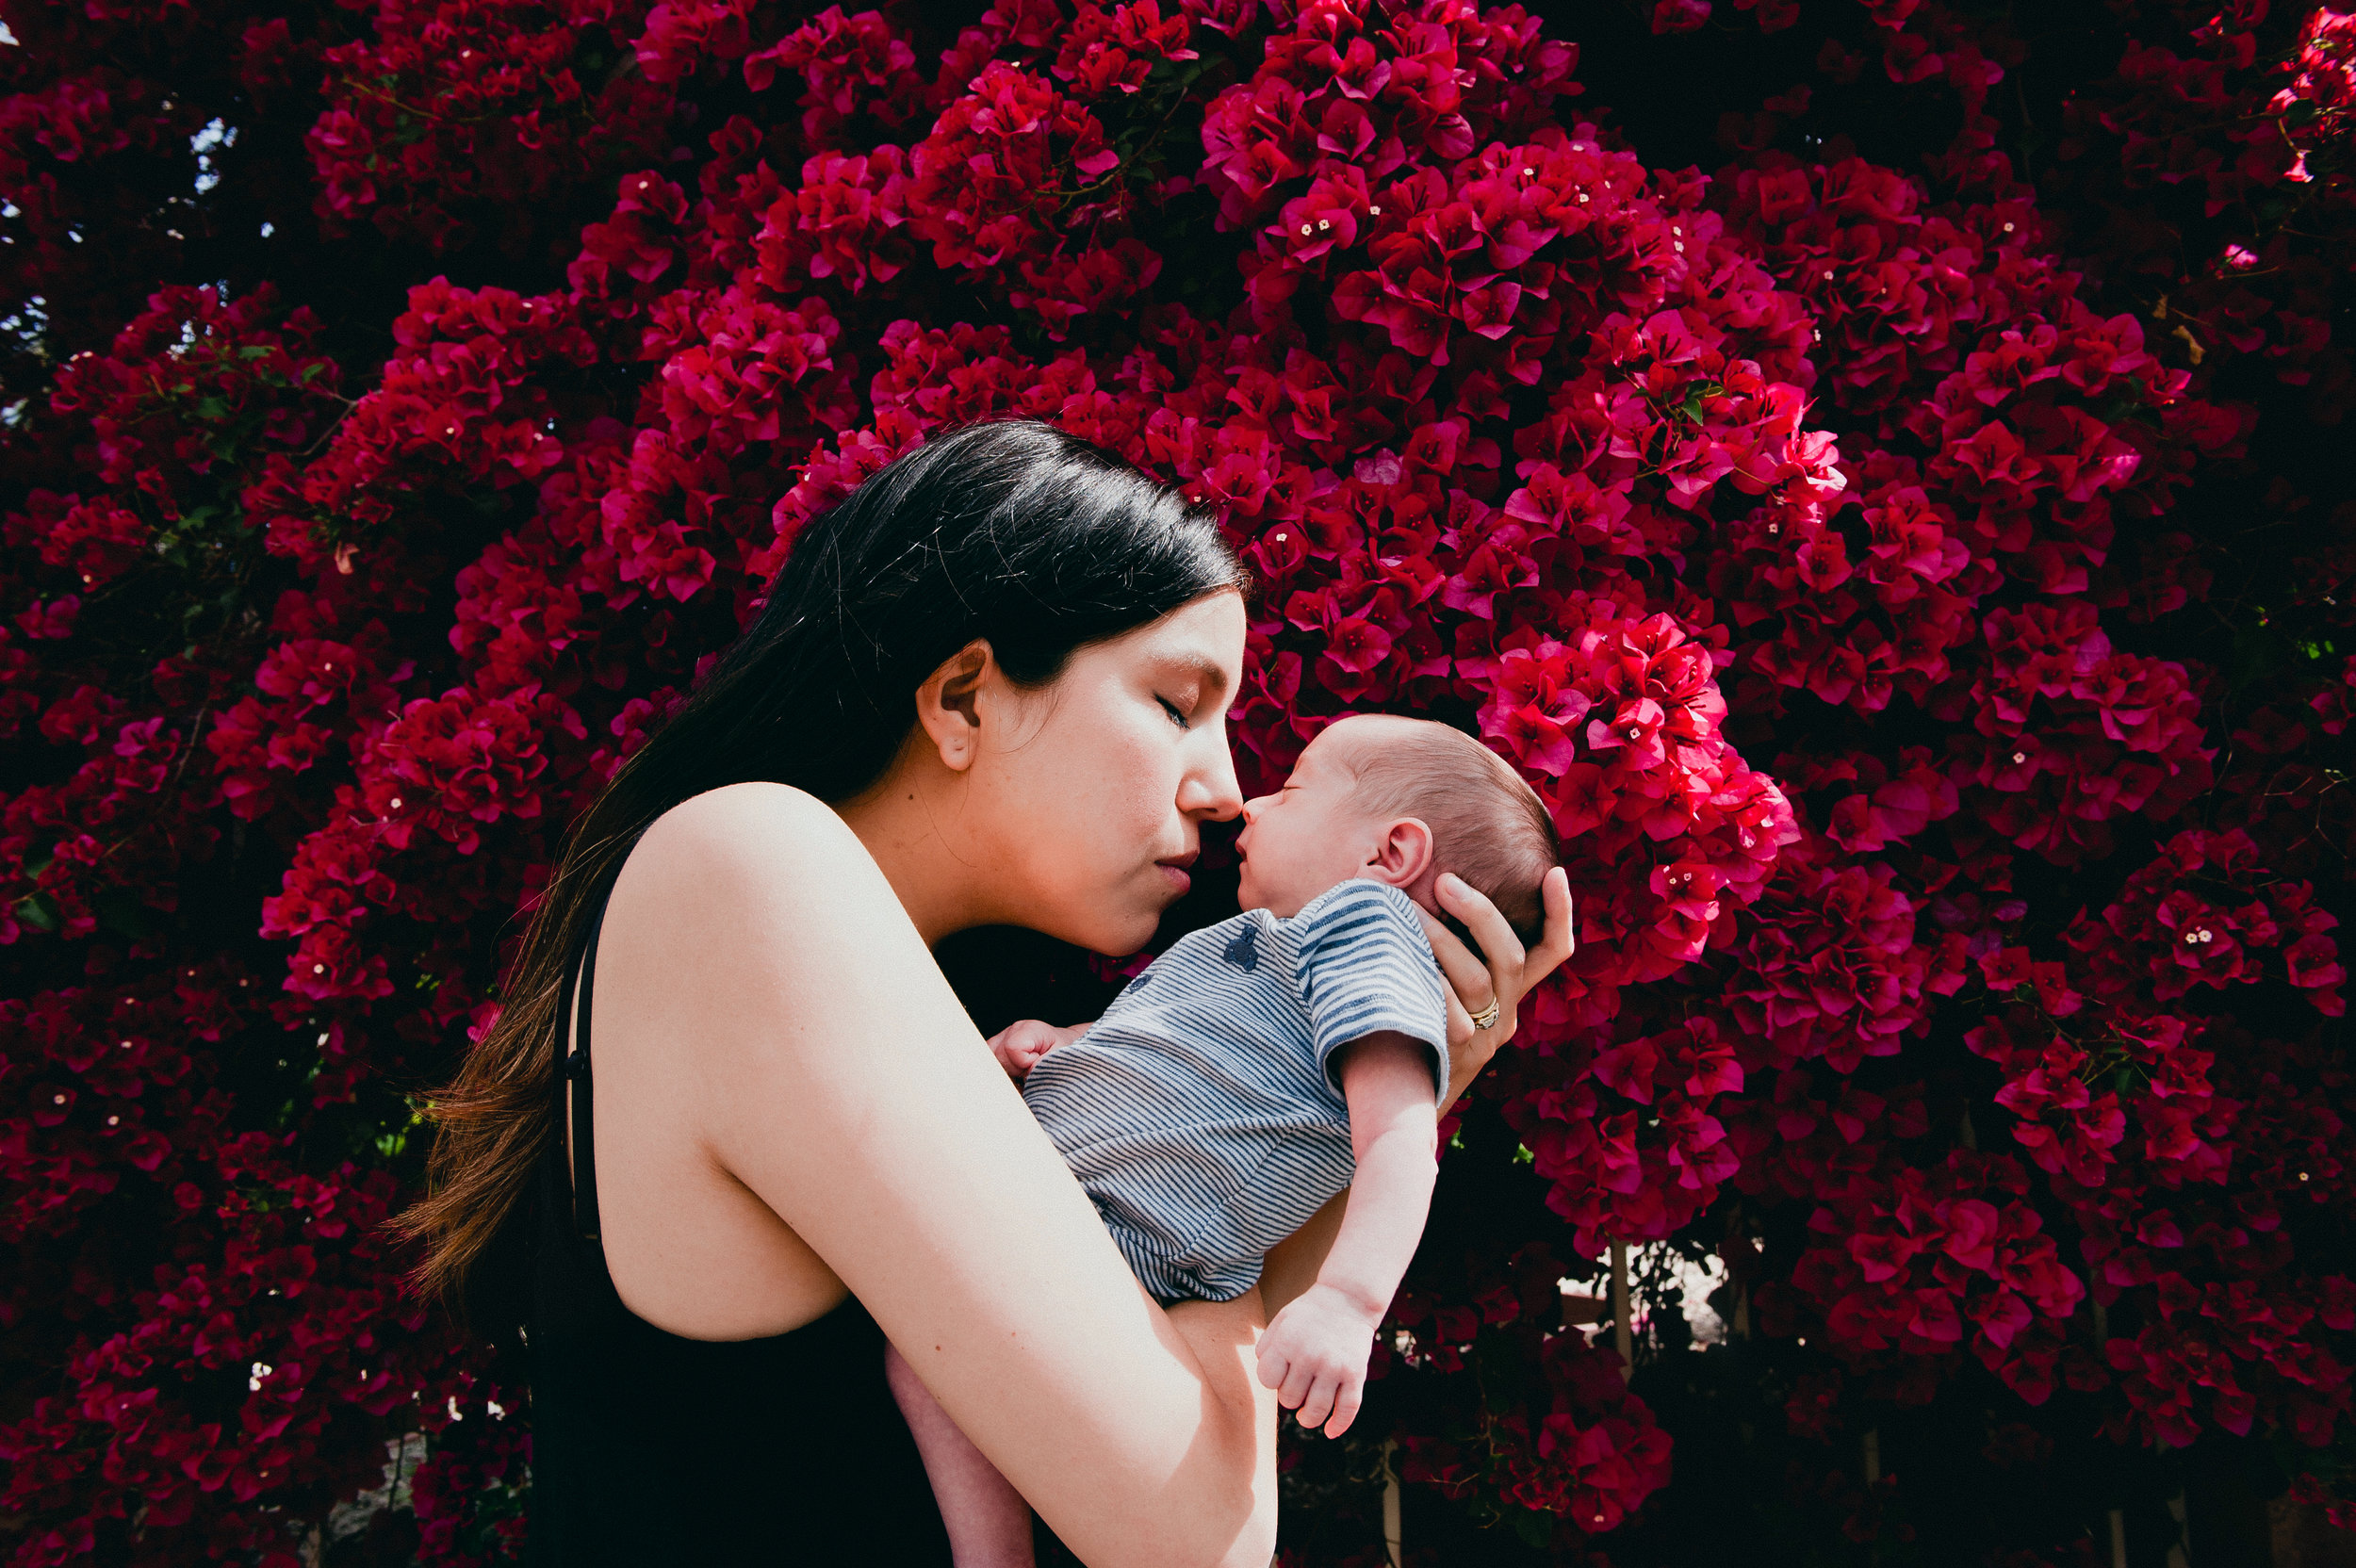 Red Anchor Photo |Sarina Cass specializes in wedding, newborn,family, food and lifestyle photography in Los Angeles, California and New York.